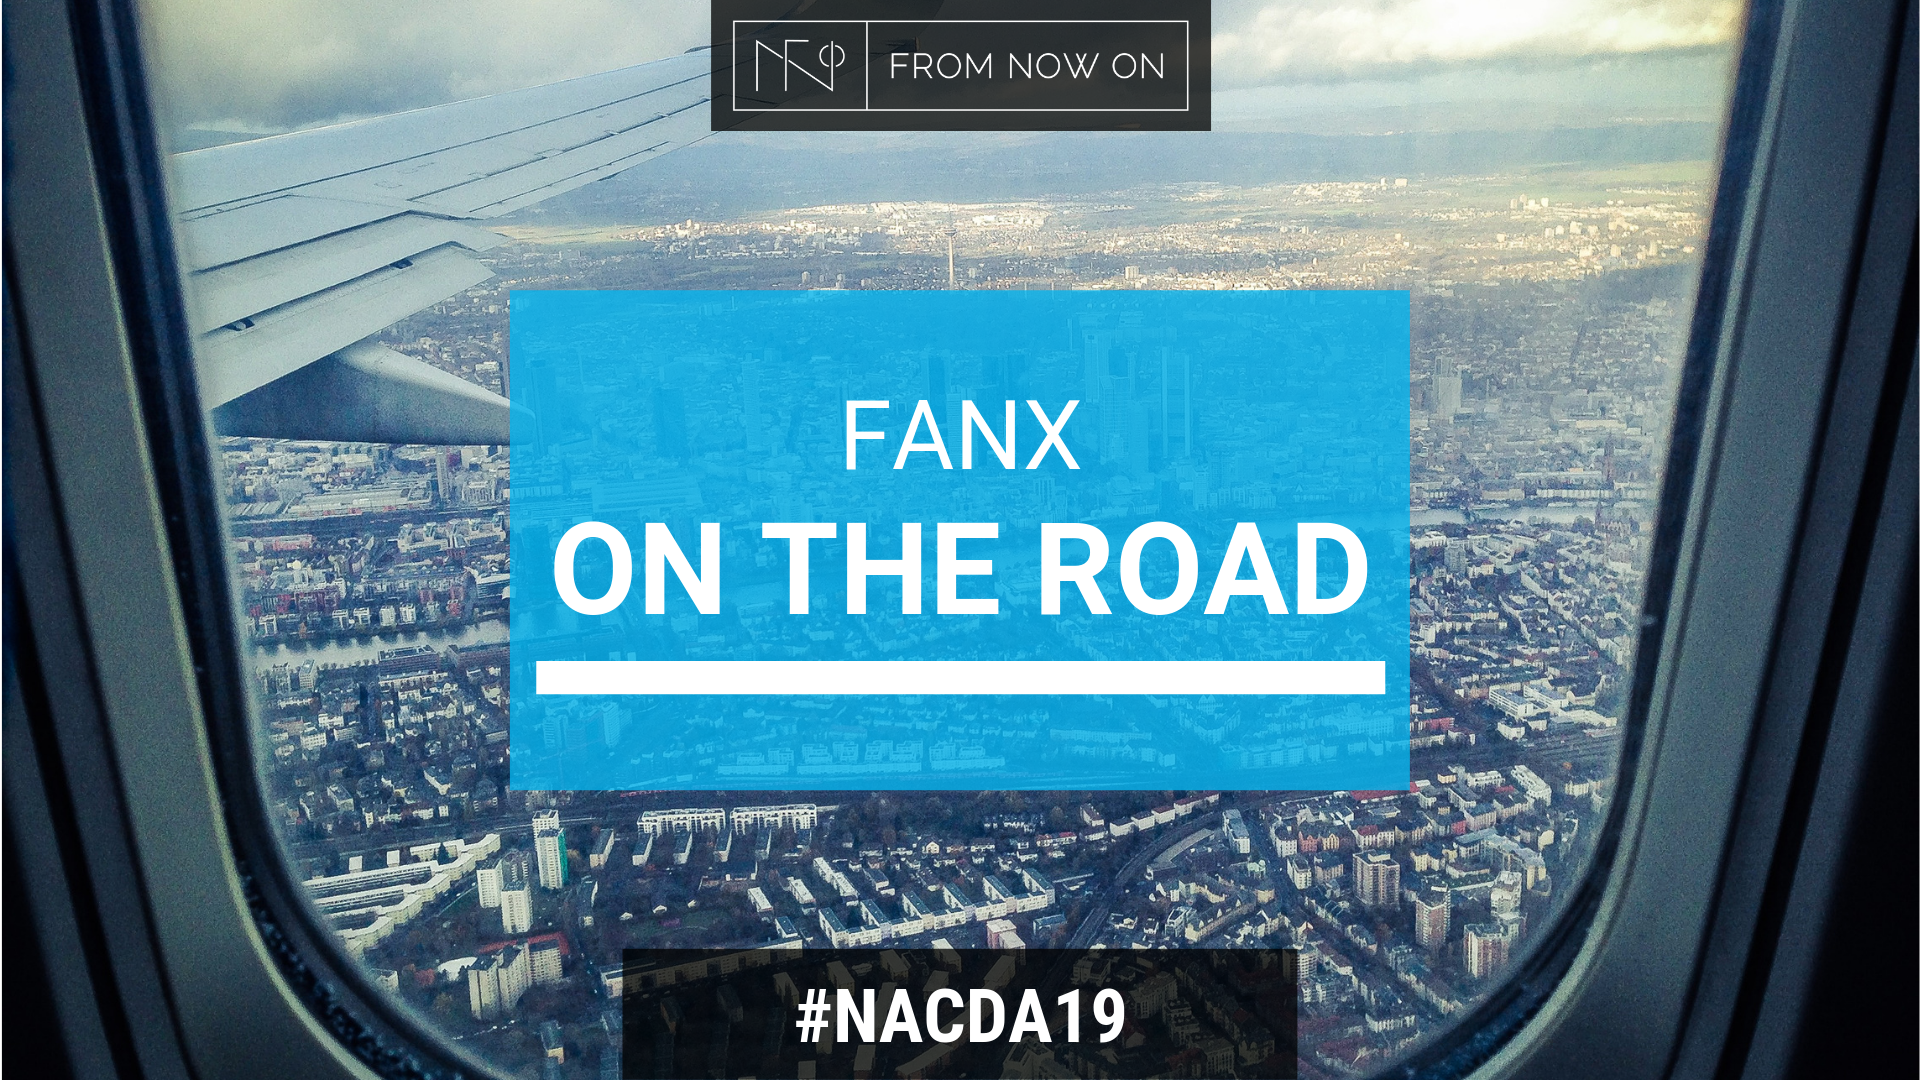 In the most recent installment of our    FanX On The Road    series, Sales Representative Max Wyrick reflects on observations from his first NACDA experience.